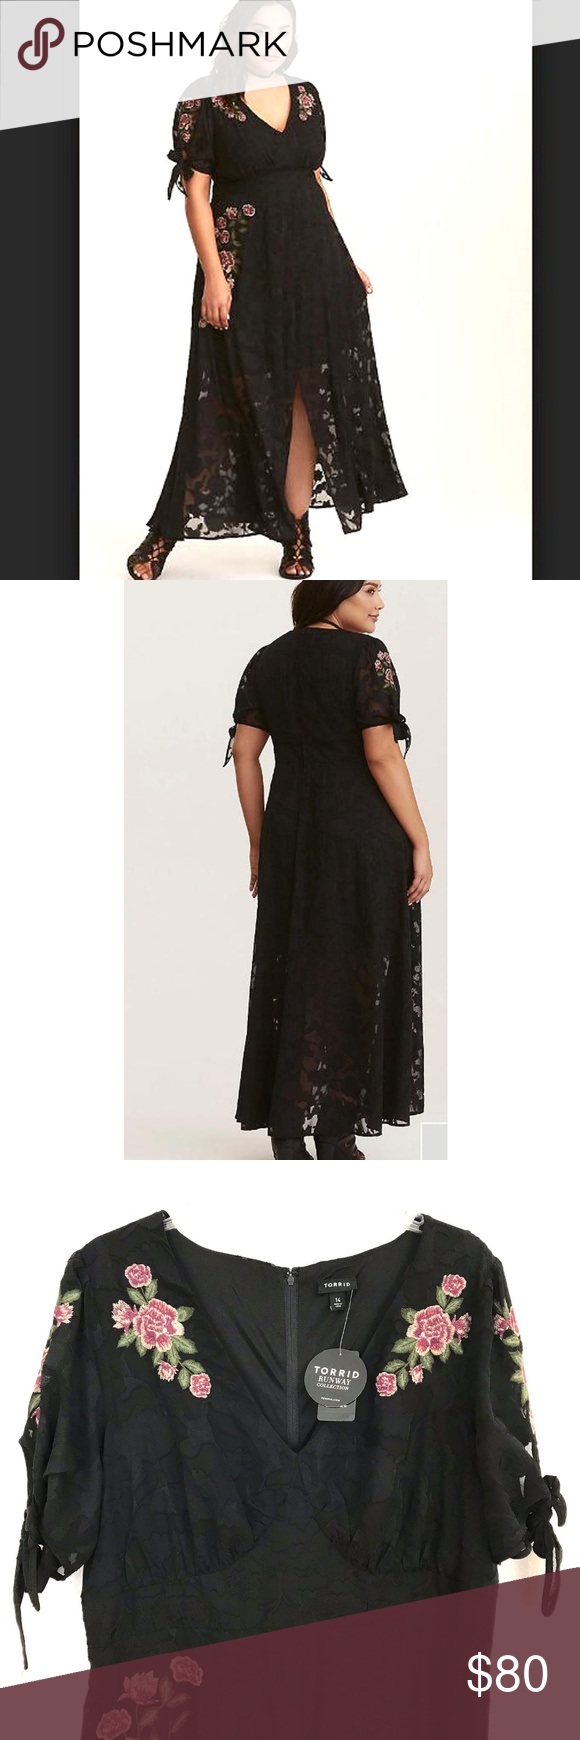 db9ce05f79ad Torrid FLORAL EMBROIDERED Chiffon maxi dress plus RUNWAY COLLECTION - BLACK  FLORAL EMBROIDERED CHIFFON MAXI DRESS